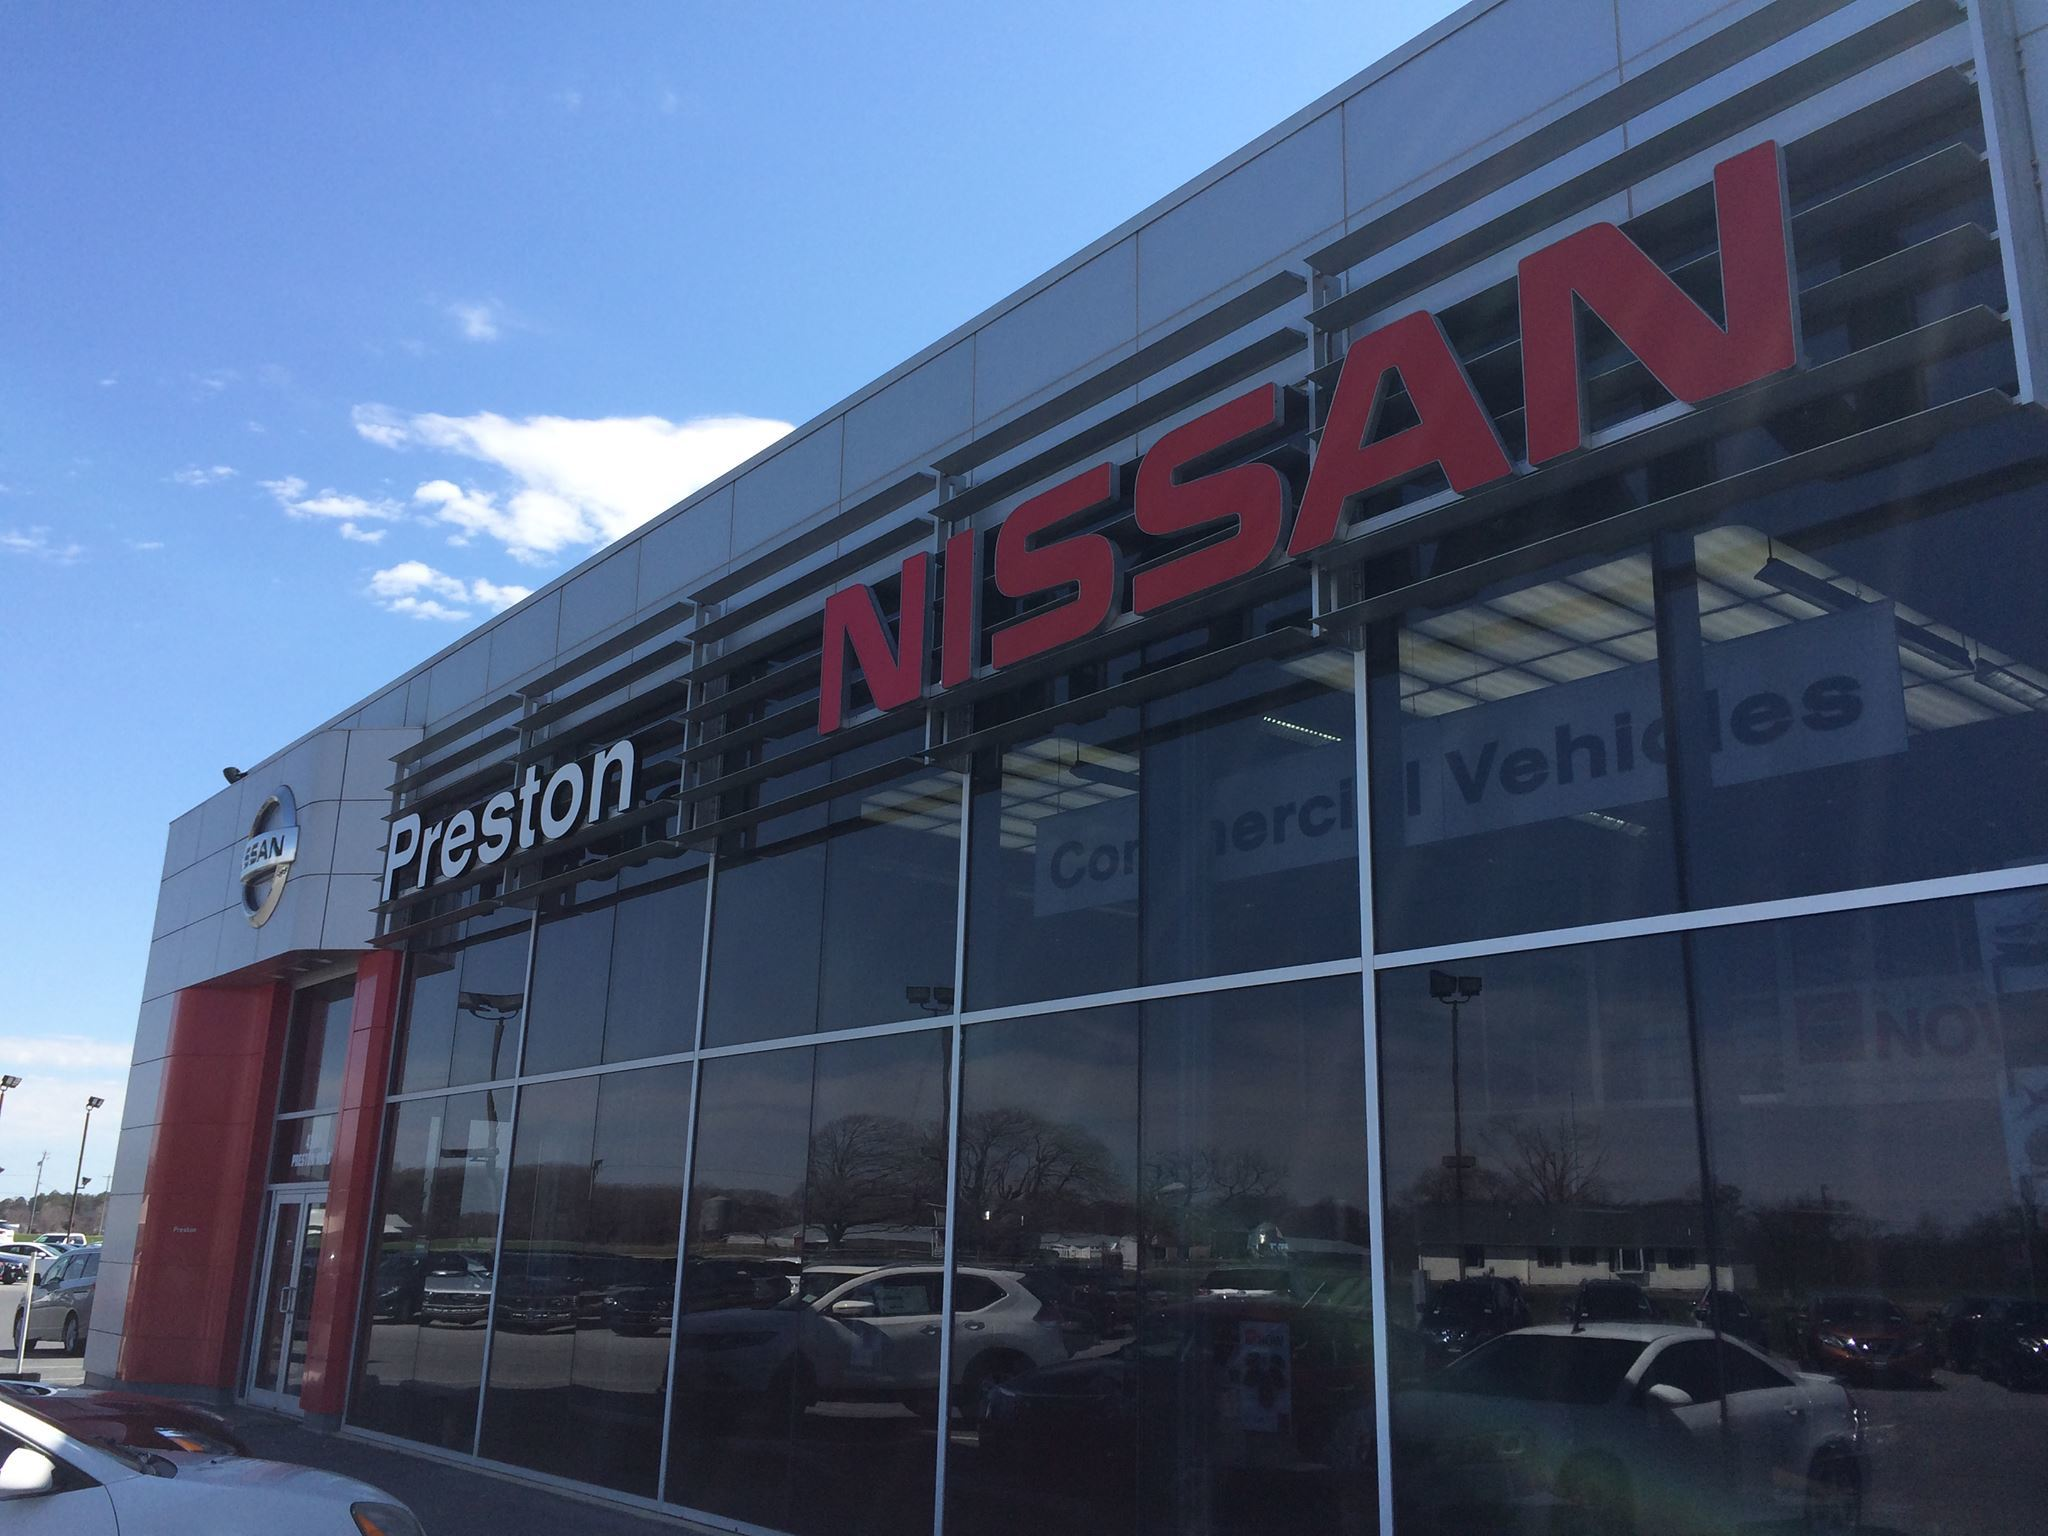 midnight east nj cc packages nissan car edition windsor dealers in